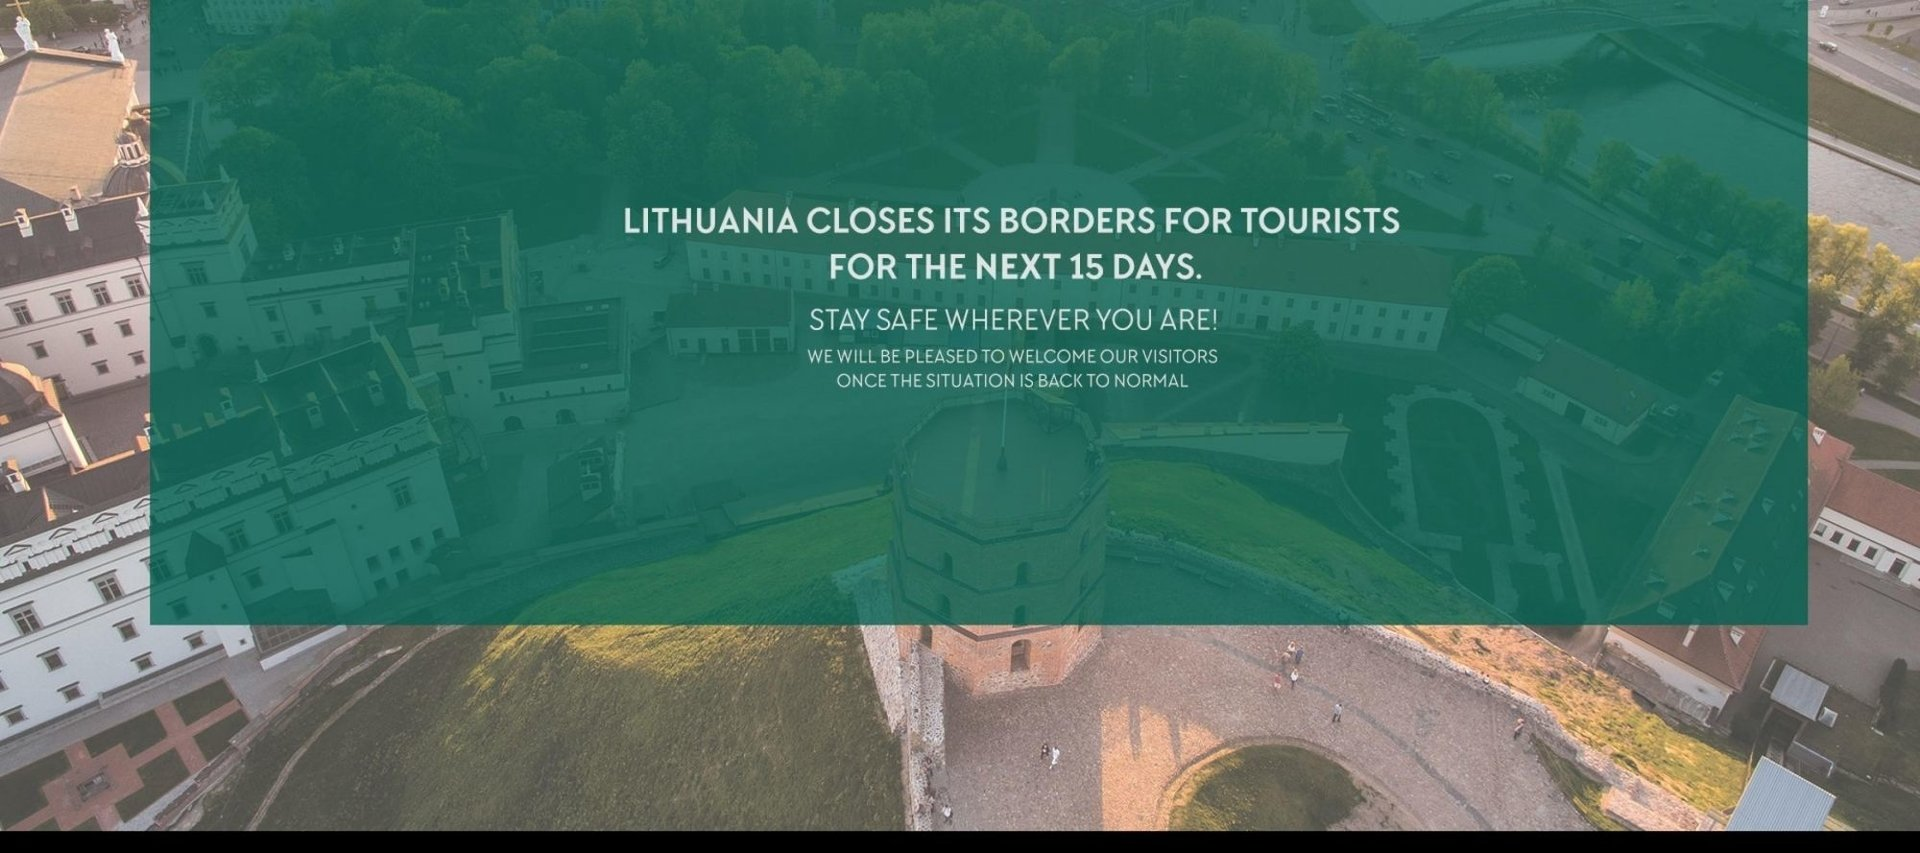 Lithuania closes borders for 15 days due to COVID-19